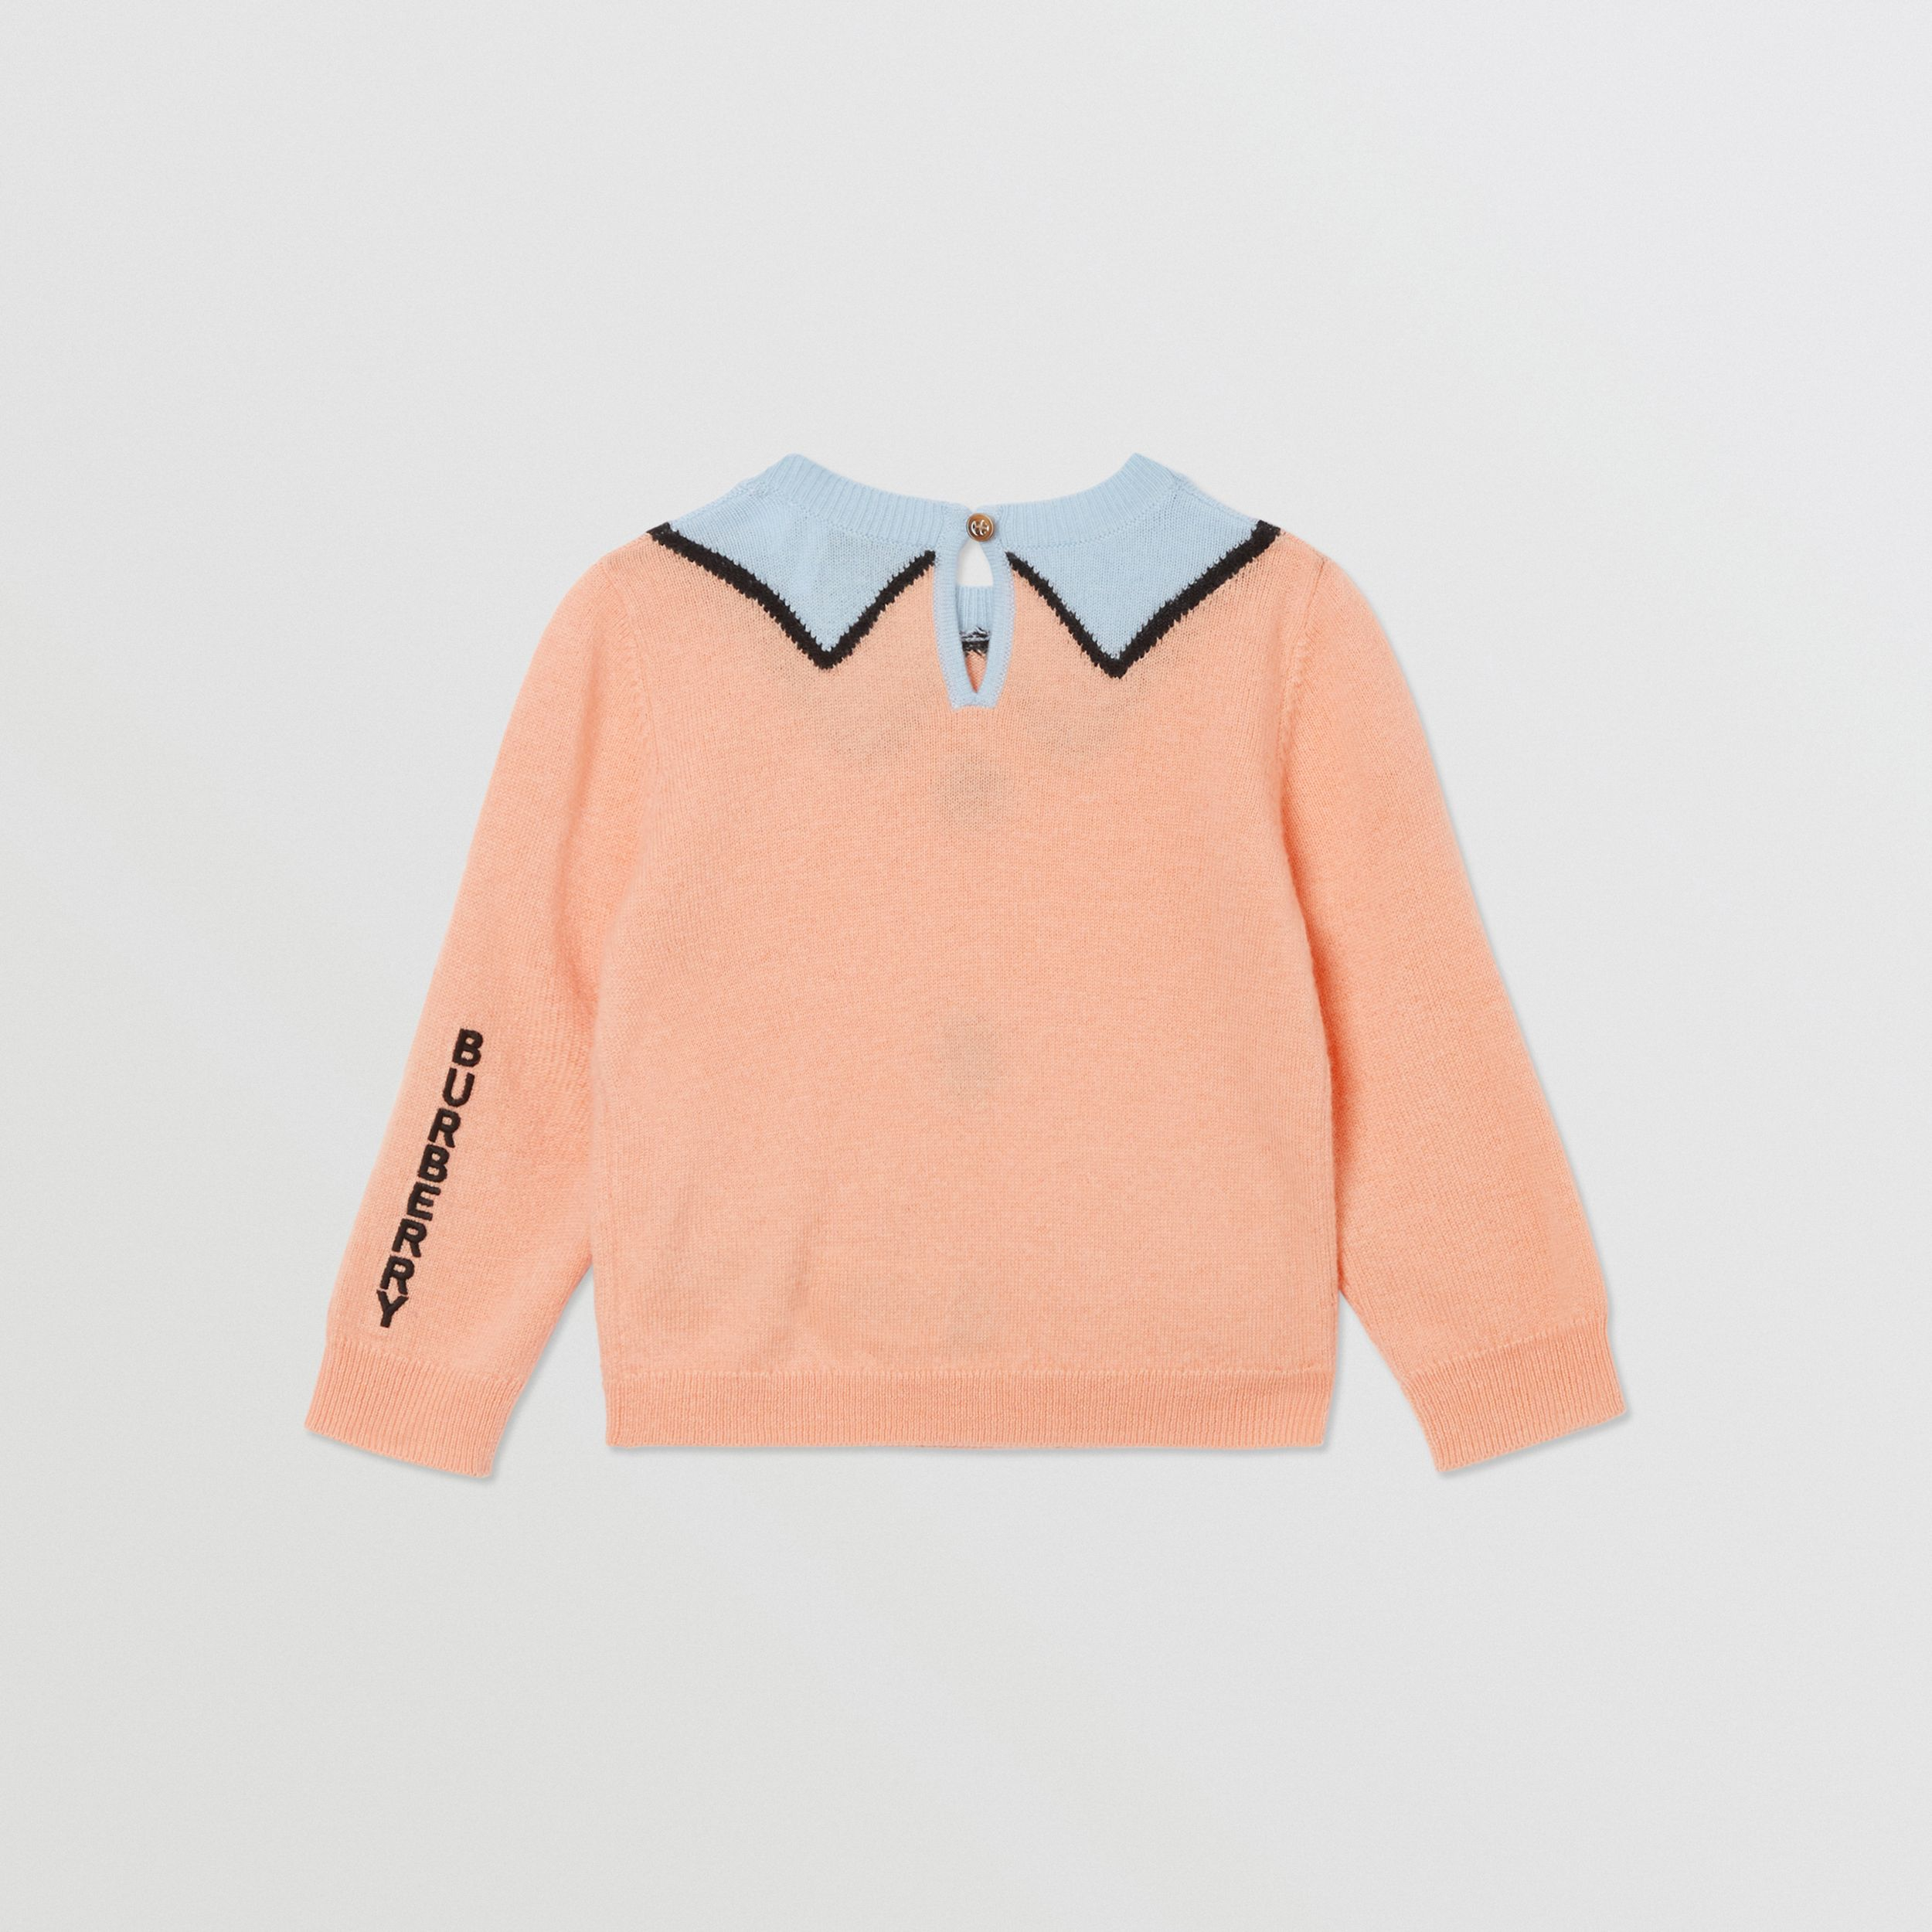 Trompe L'Oeil Intarsia Wool Cashmere Sweater in Peach - Children | Burberry - 4